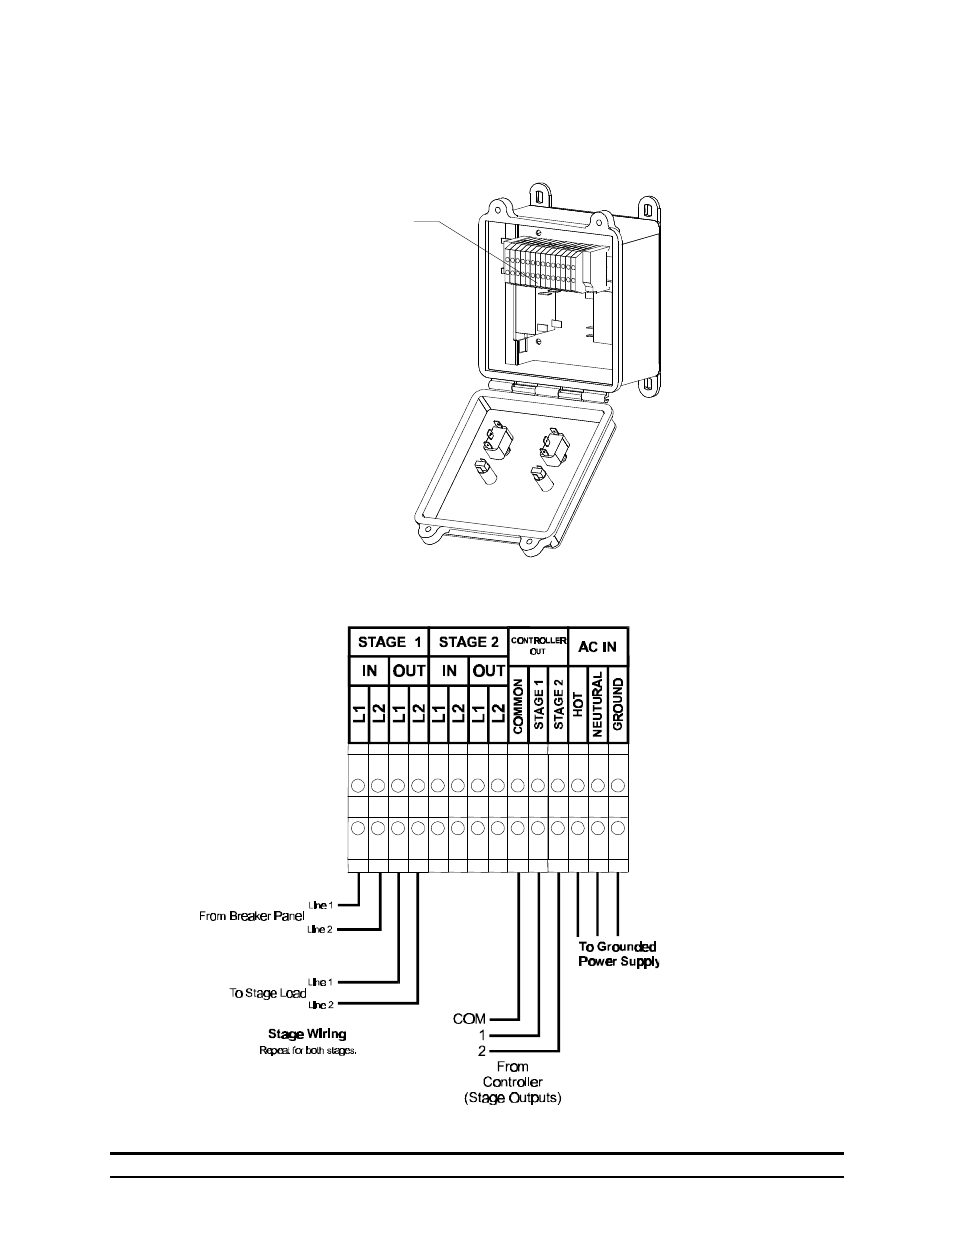 Wiring diagrams, schematics, etc | Hired-Hand Farm Hand Series ... on relay logic diagram, 3 pole relay diagram, basic relay diagram, car relay diagram, relay schematic circuit, relay wiring chart, 12 volt 5 pin relay diagram, relay connection diagram, electric motor schematic diagram, current relay diagram, relay schematic symbol, relay terminal number diagram, basic circuit diagram, relay circuit diagram, 12 volt automotive relay diagram, normally open relay diagram, electrical relay diagram, 8 pin relay base diagram, relay function diagram, simple amplifier diagram,